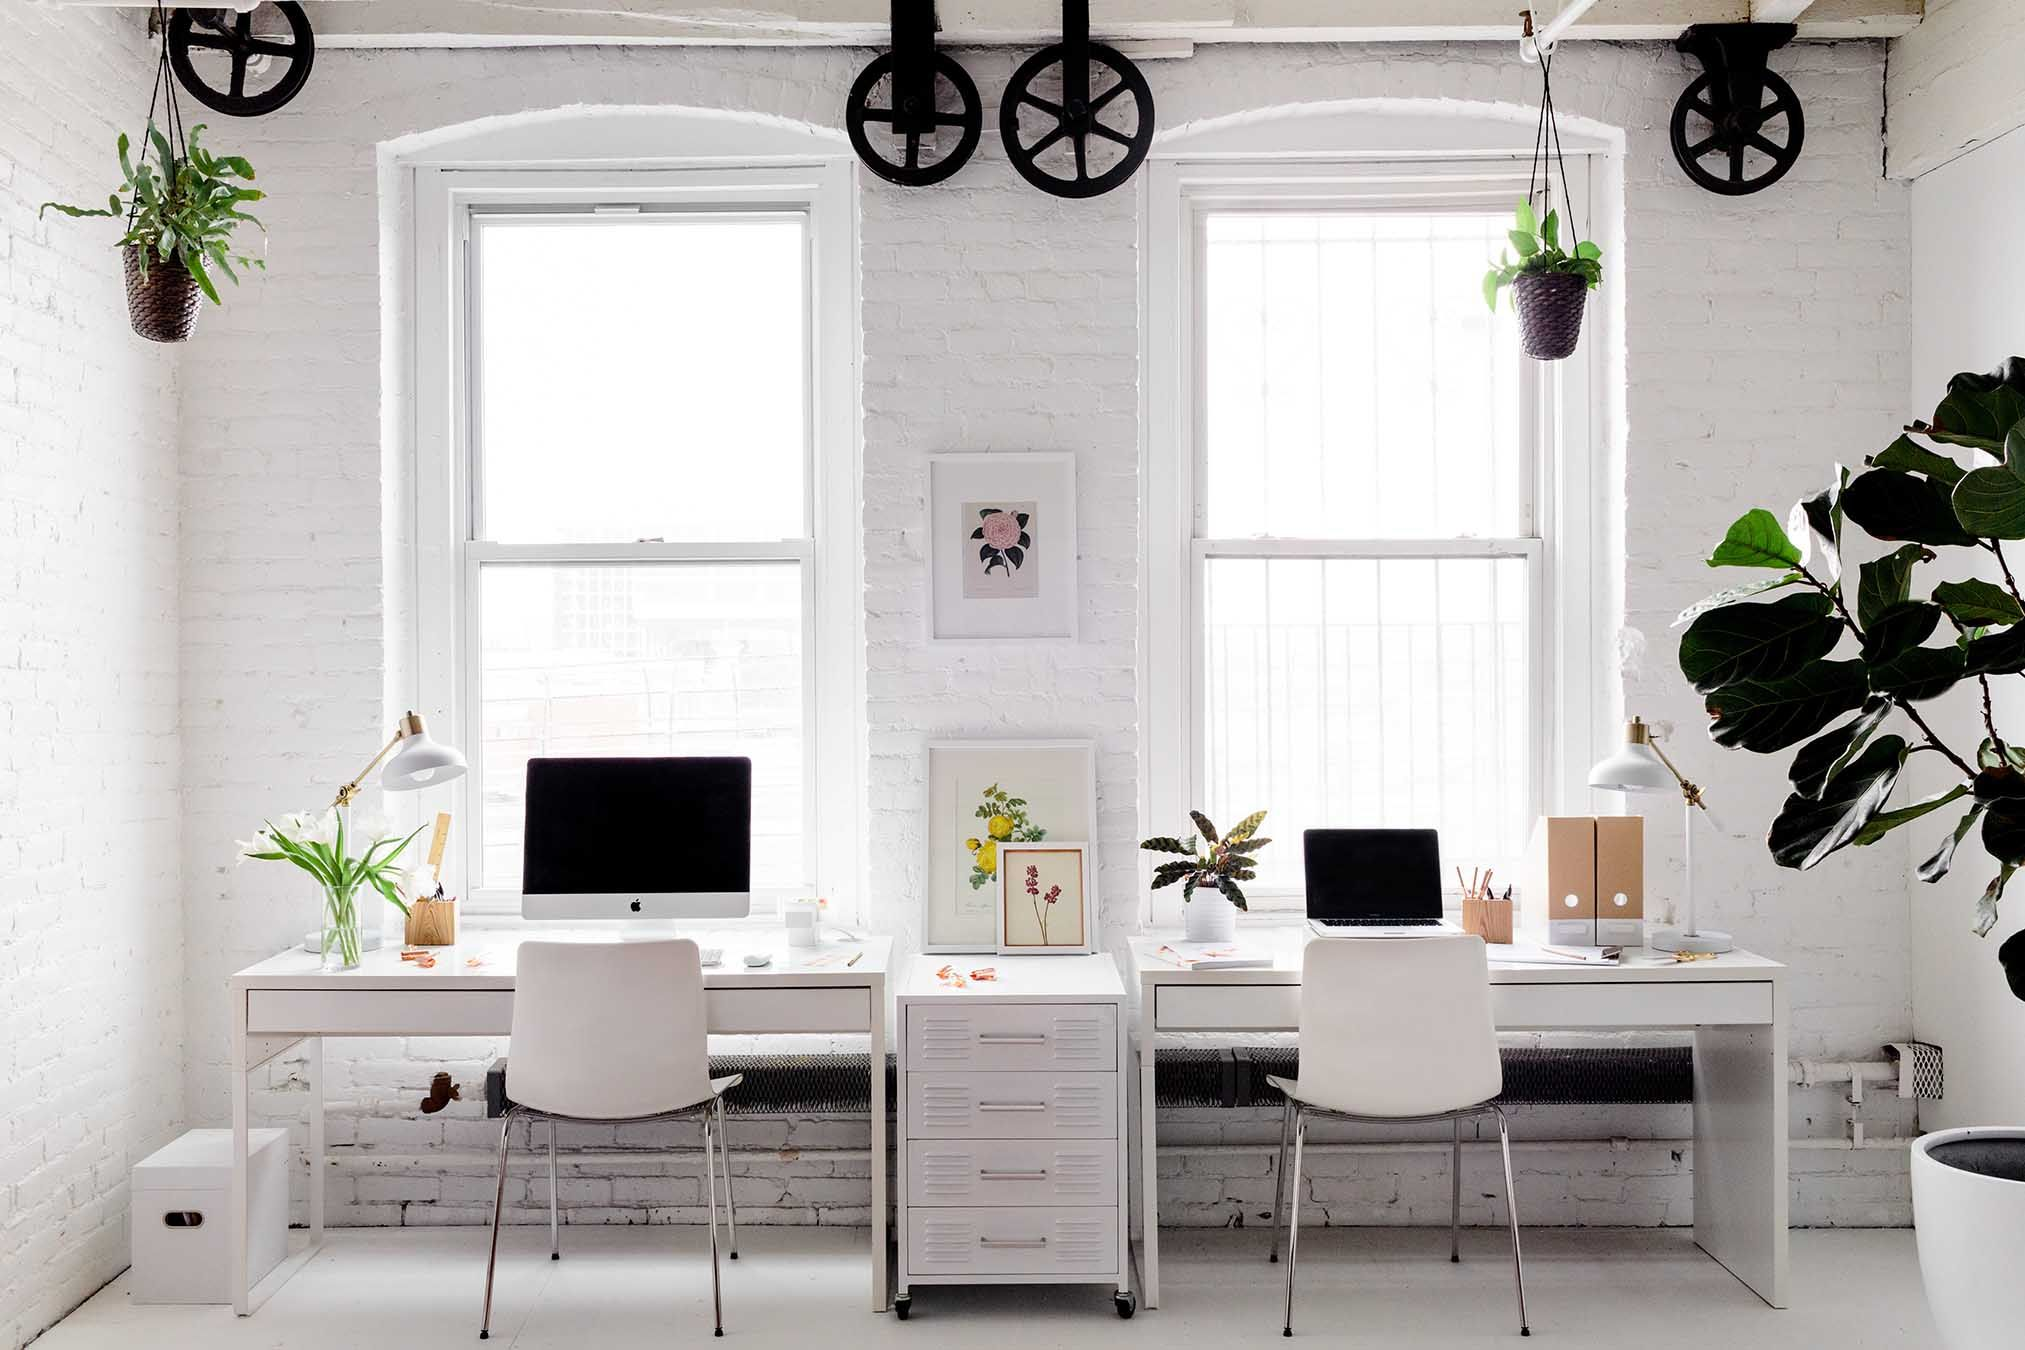 1956blooms Exquisitely Minimal Floral Studio Home Office D